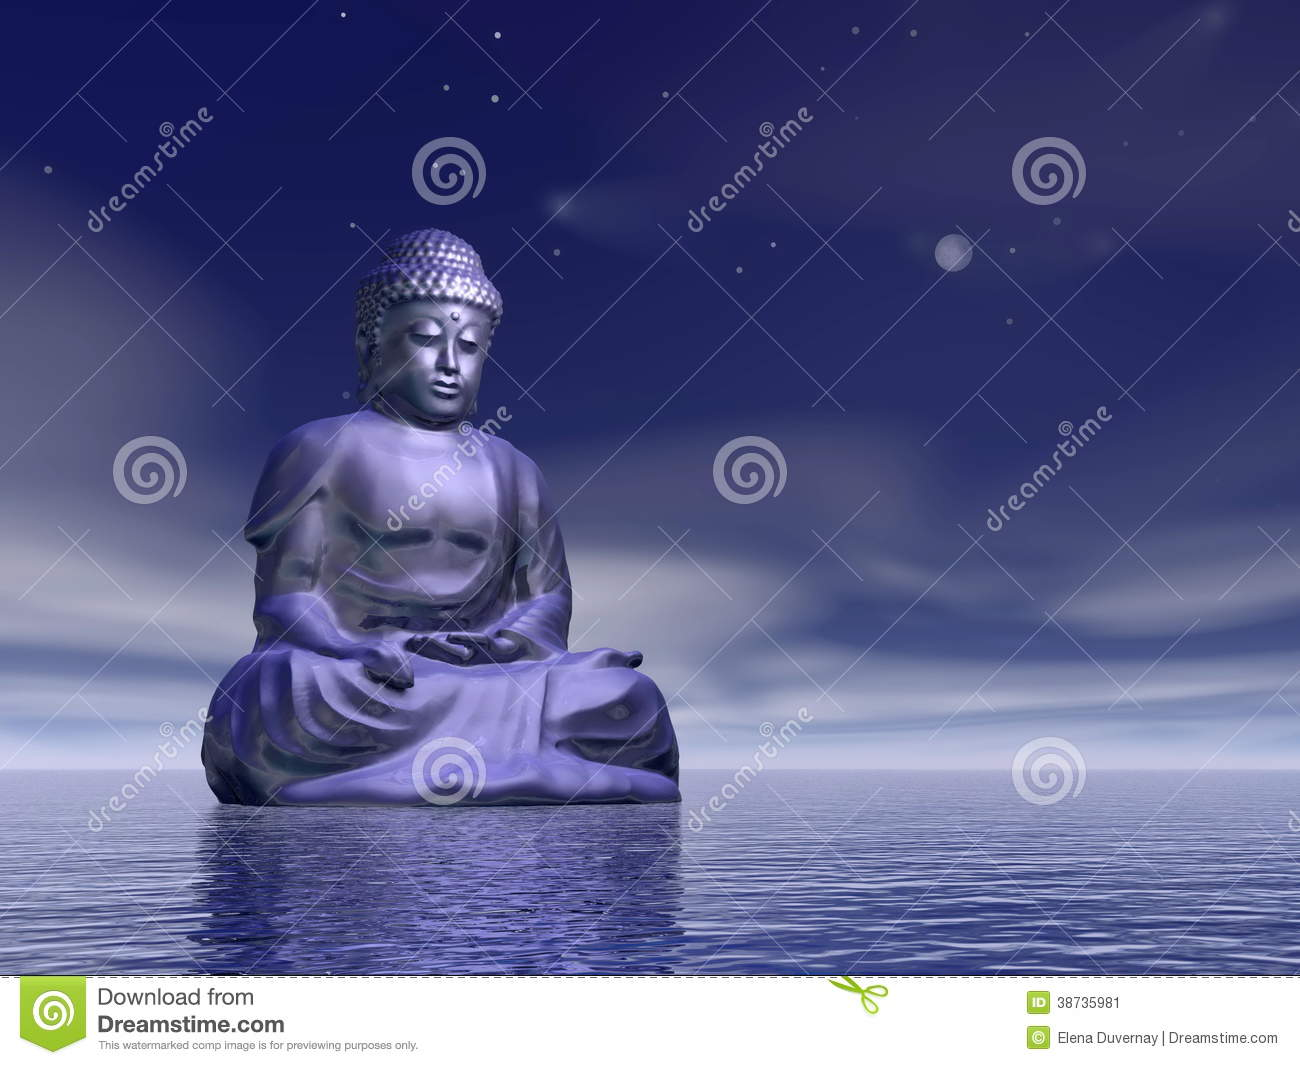 blue buddhist singles Buddhist singles dating - online dating is very simple and fast, all you have to do is just create profile, look for potential matches.